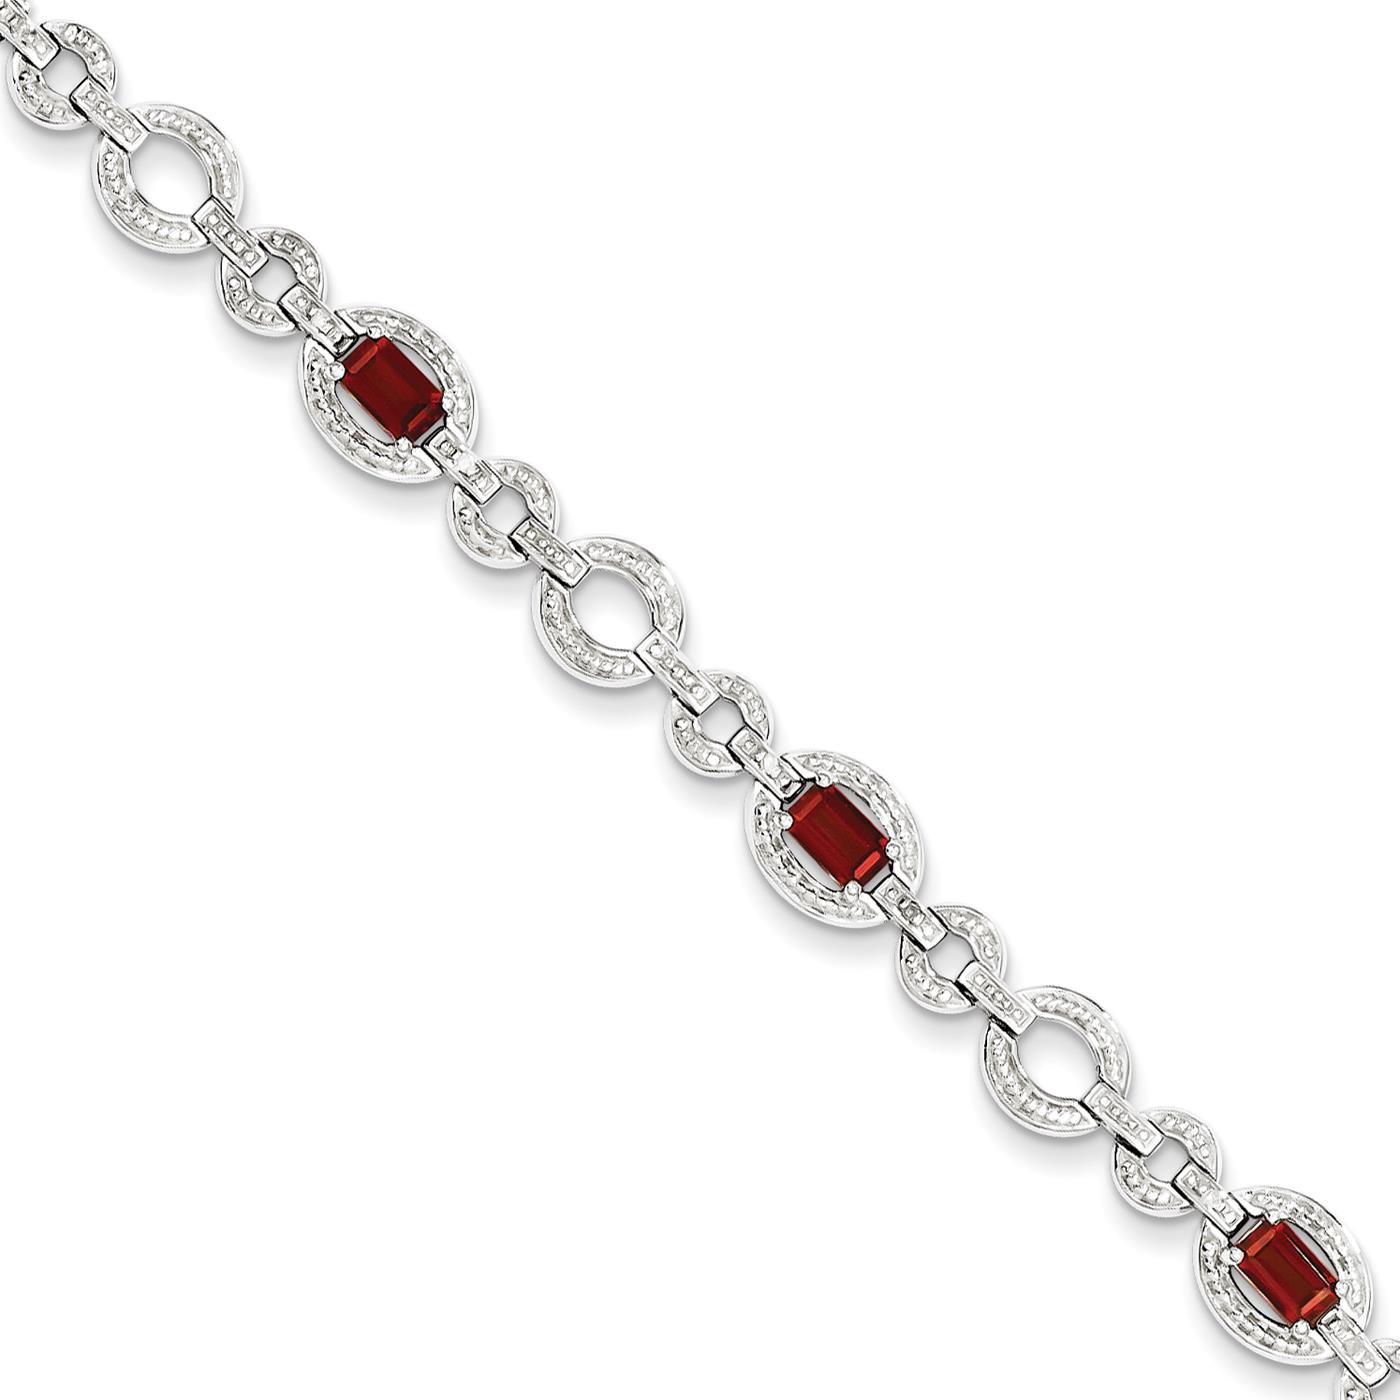 """New Ladies 925 SS 7mm Rhodium Finish Diamond & Garnet Oval Link Bracelet 7"""" by Fusion Collections"""